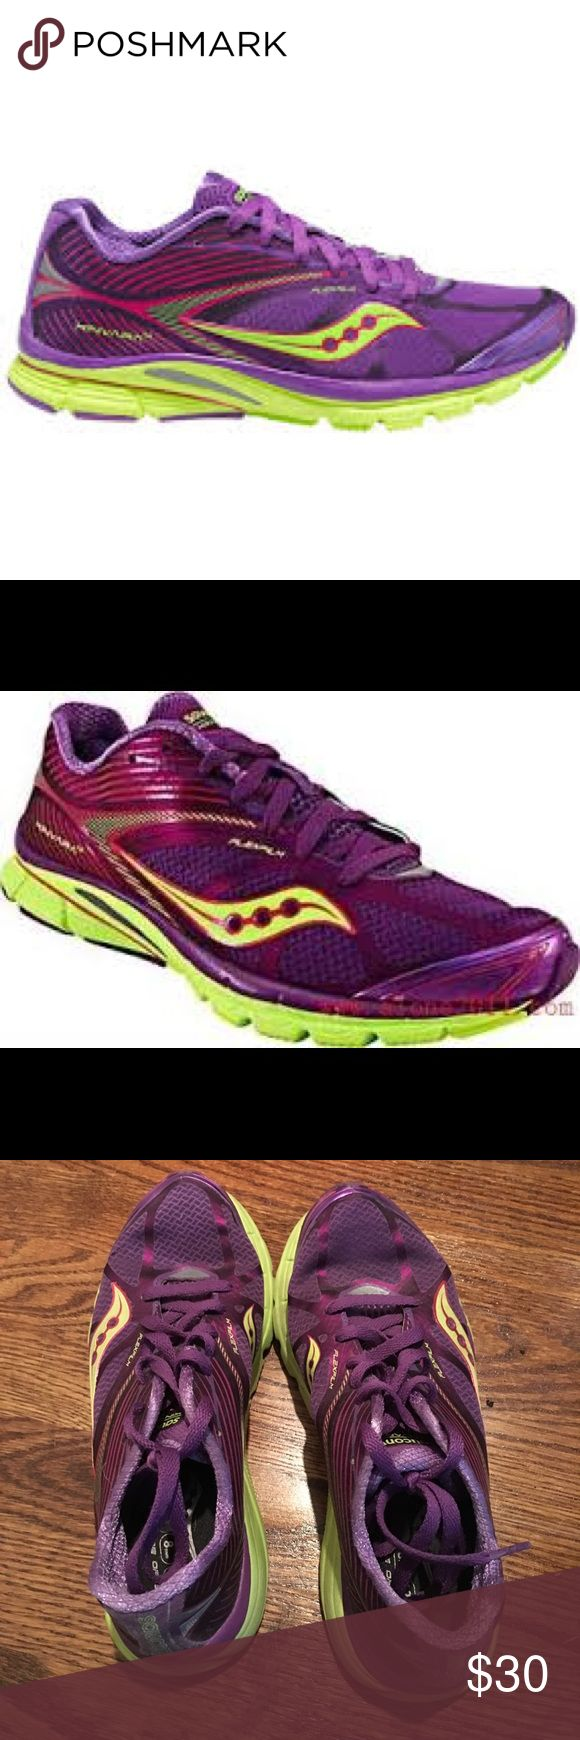 SALE Saucony PowerGrid Kinvara 4 purple Good used condition.  Plenty of life. Saucony Shoes Athletic Shoes